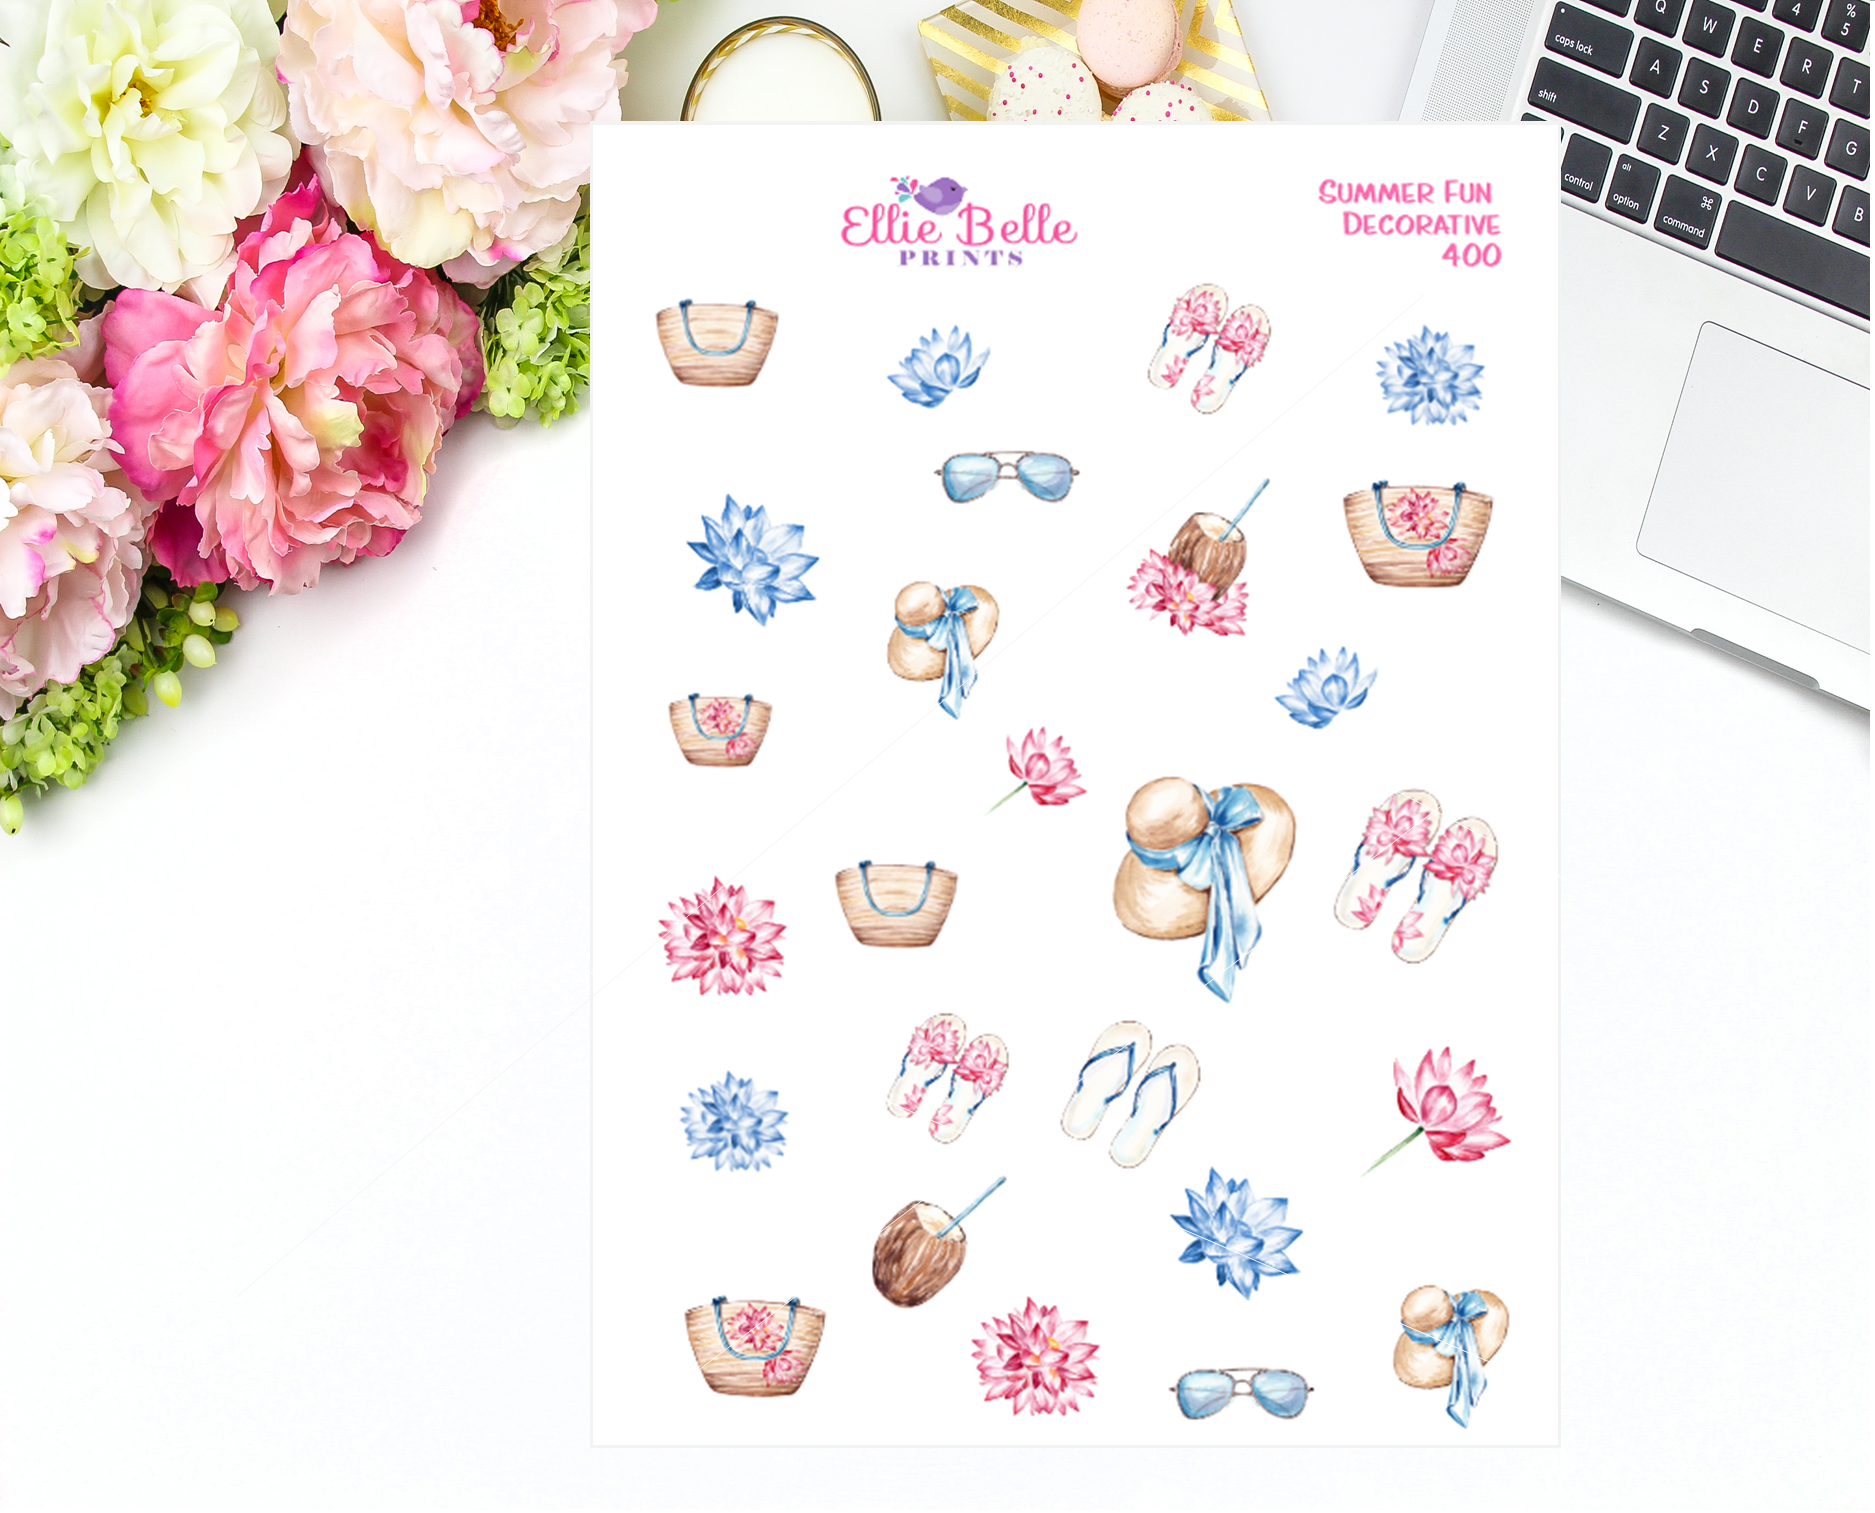 Summer Fun Collection Decorative Stickers